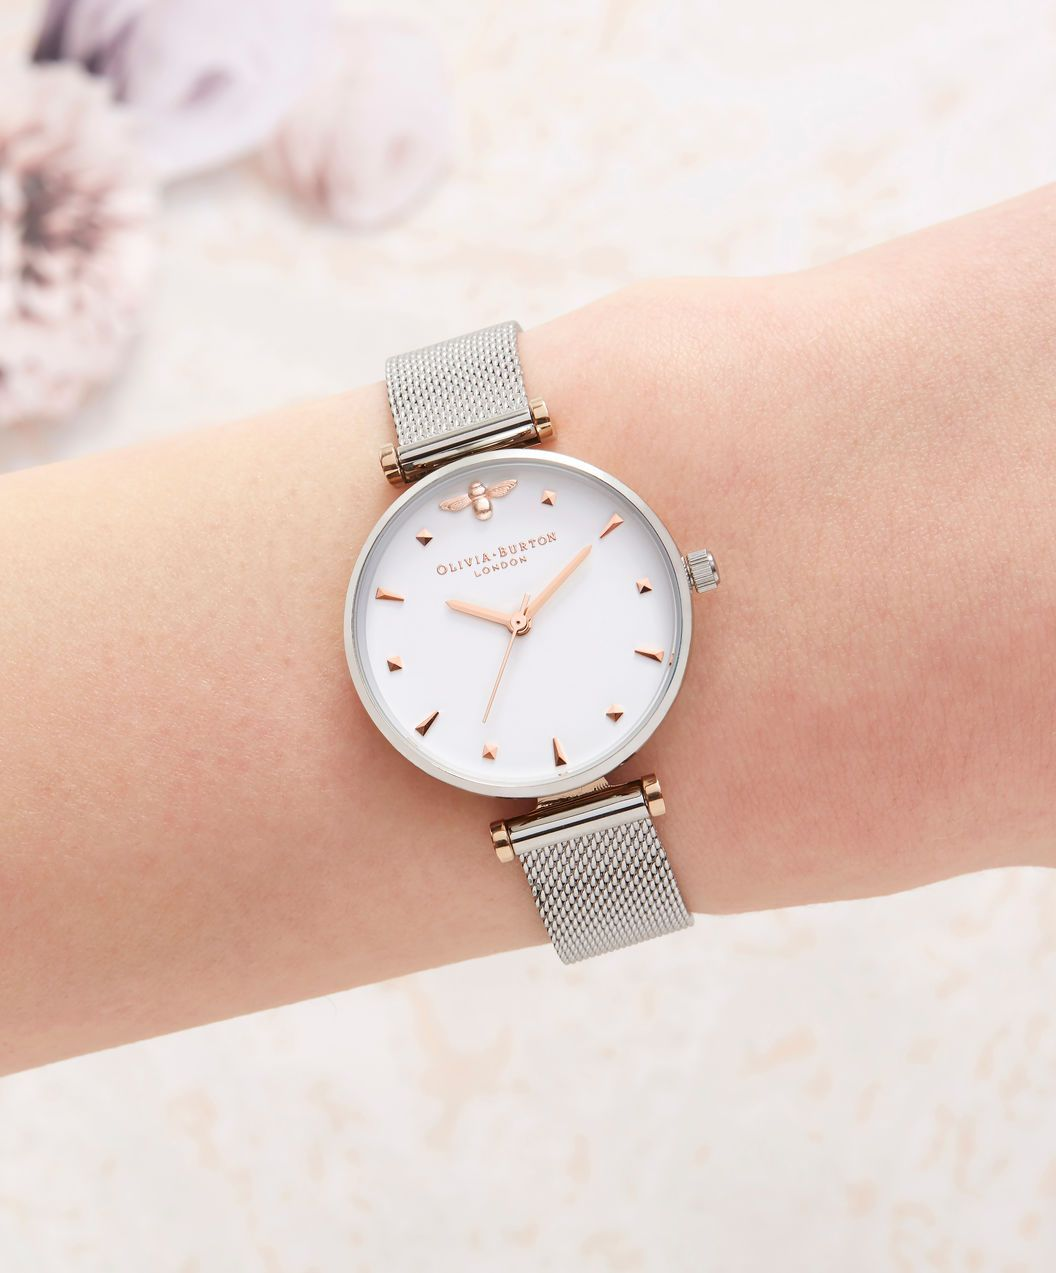 OLIVIA BURTON LONDON Queen Bee Silver Mesh Watch OB16AM140 – Midi Dial  Round in White and a9b30c7ff3